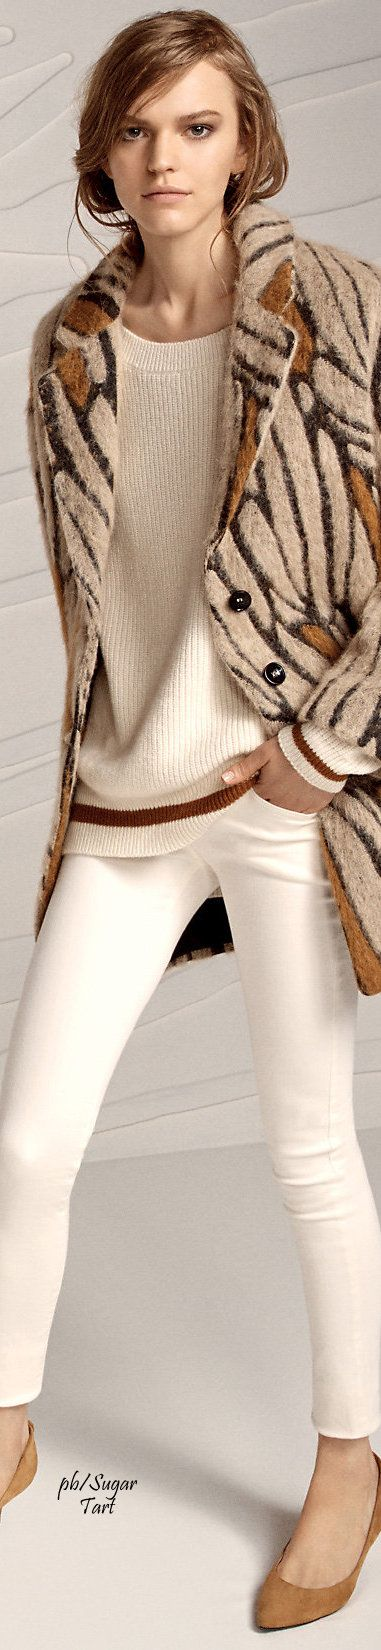 Patrizia Pepe Fall 2015 women fashion outfit clothing style apparel @roressclothes closet ideas